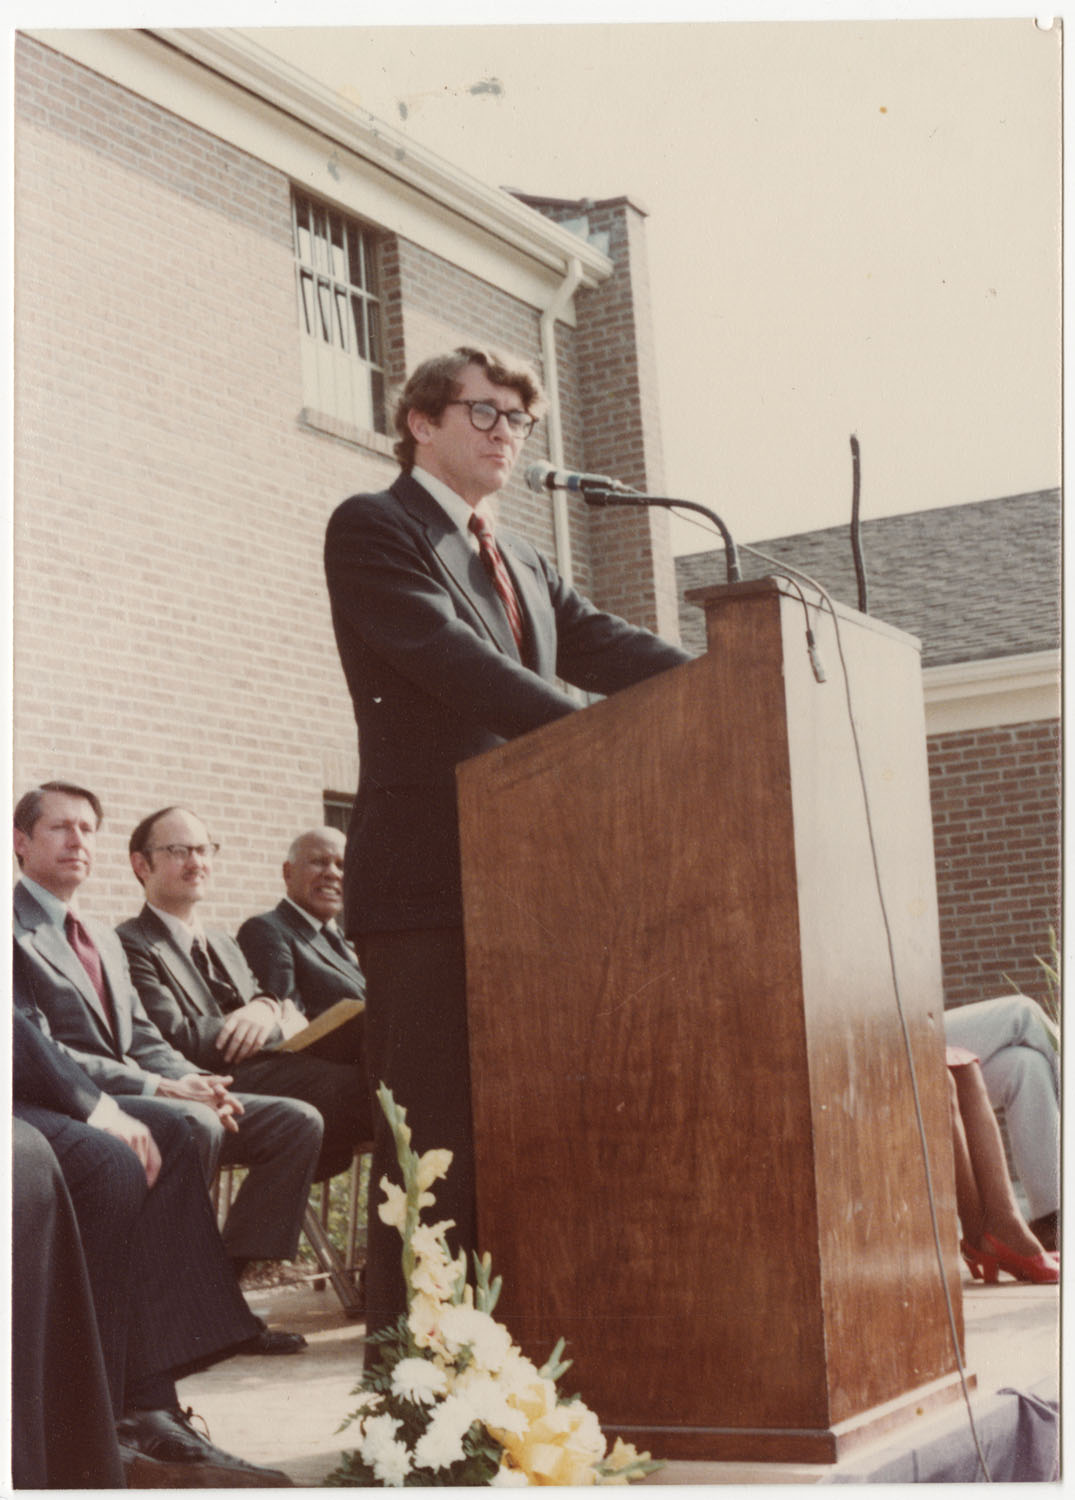 Joseph P. Riley, Septima P. Clark Day Care Center Ceremony, May 19, 1978